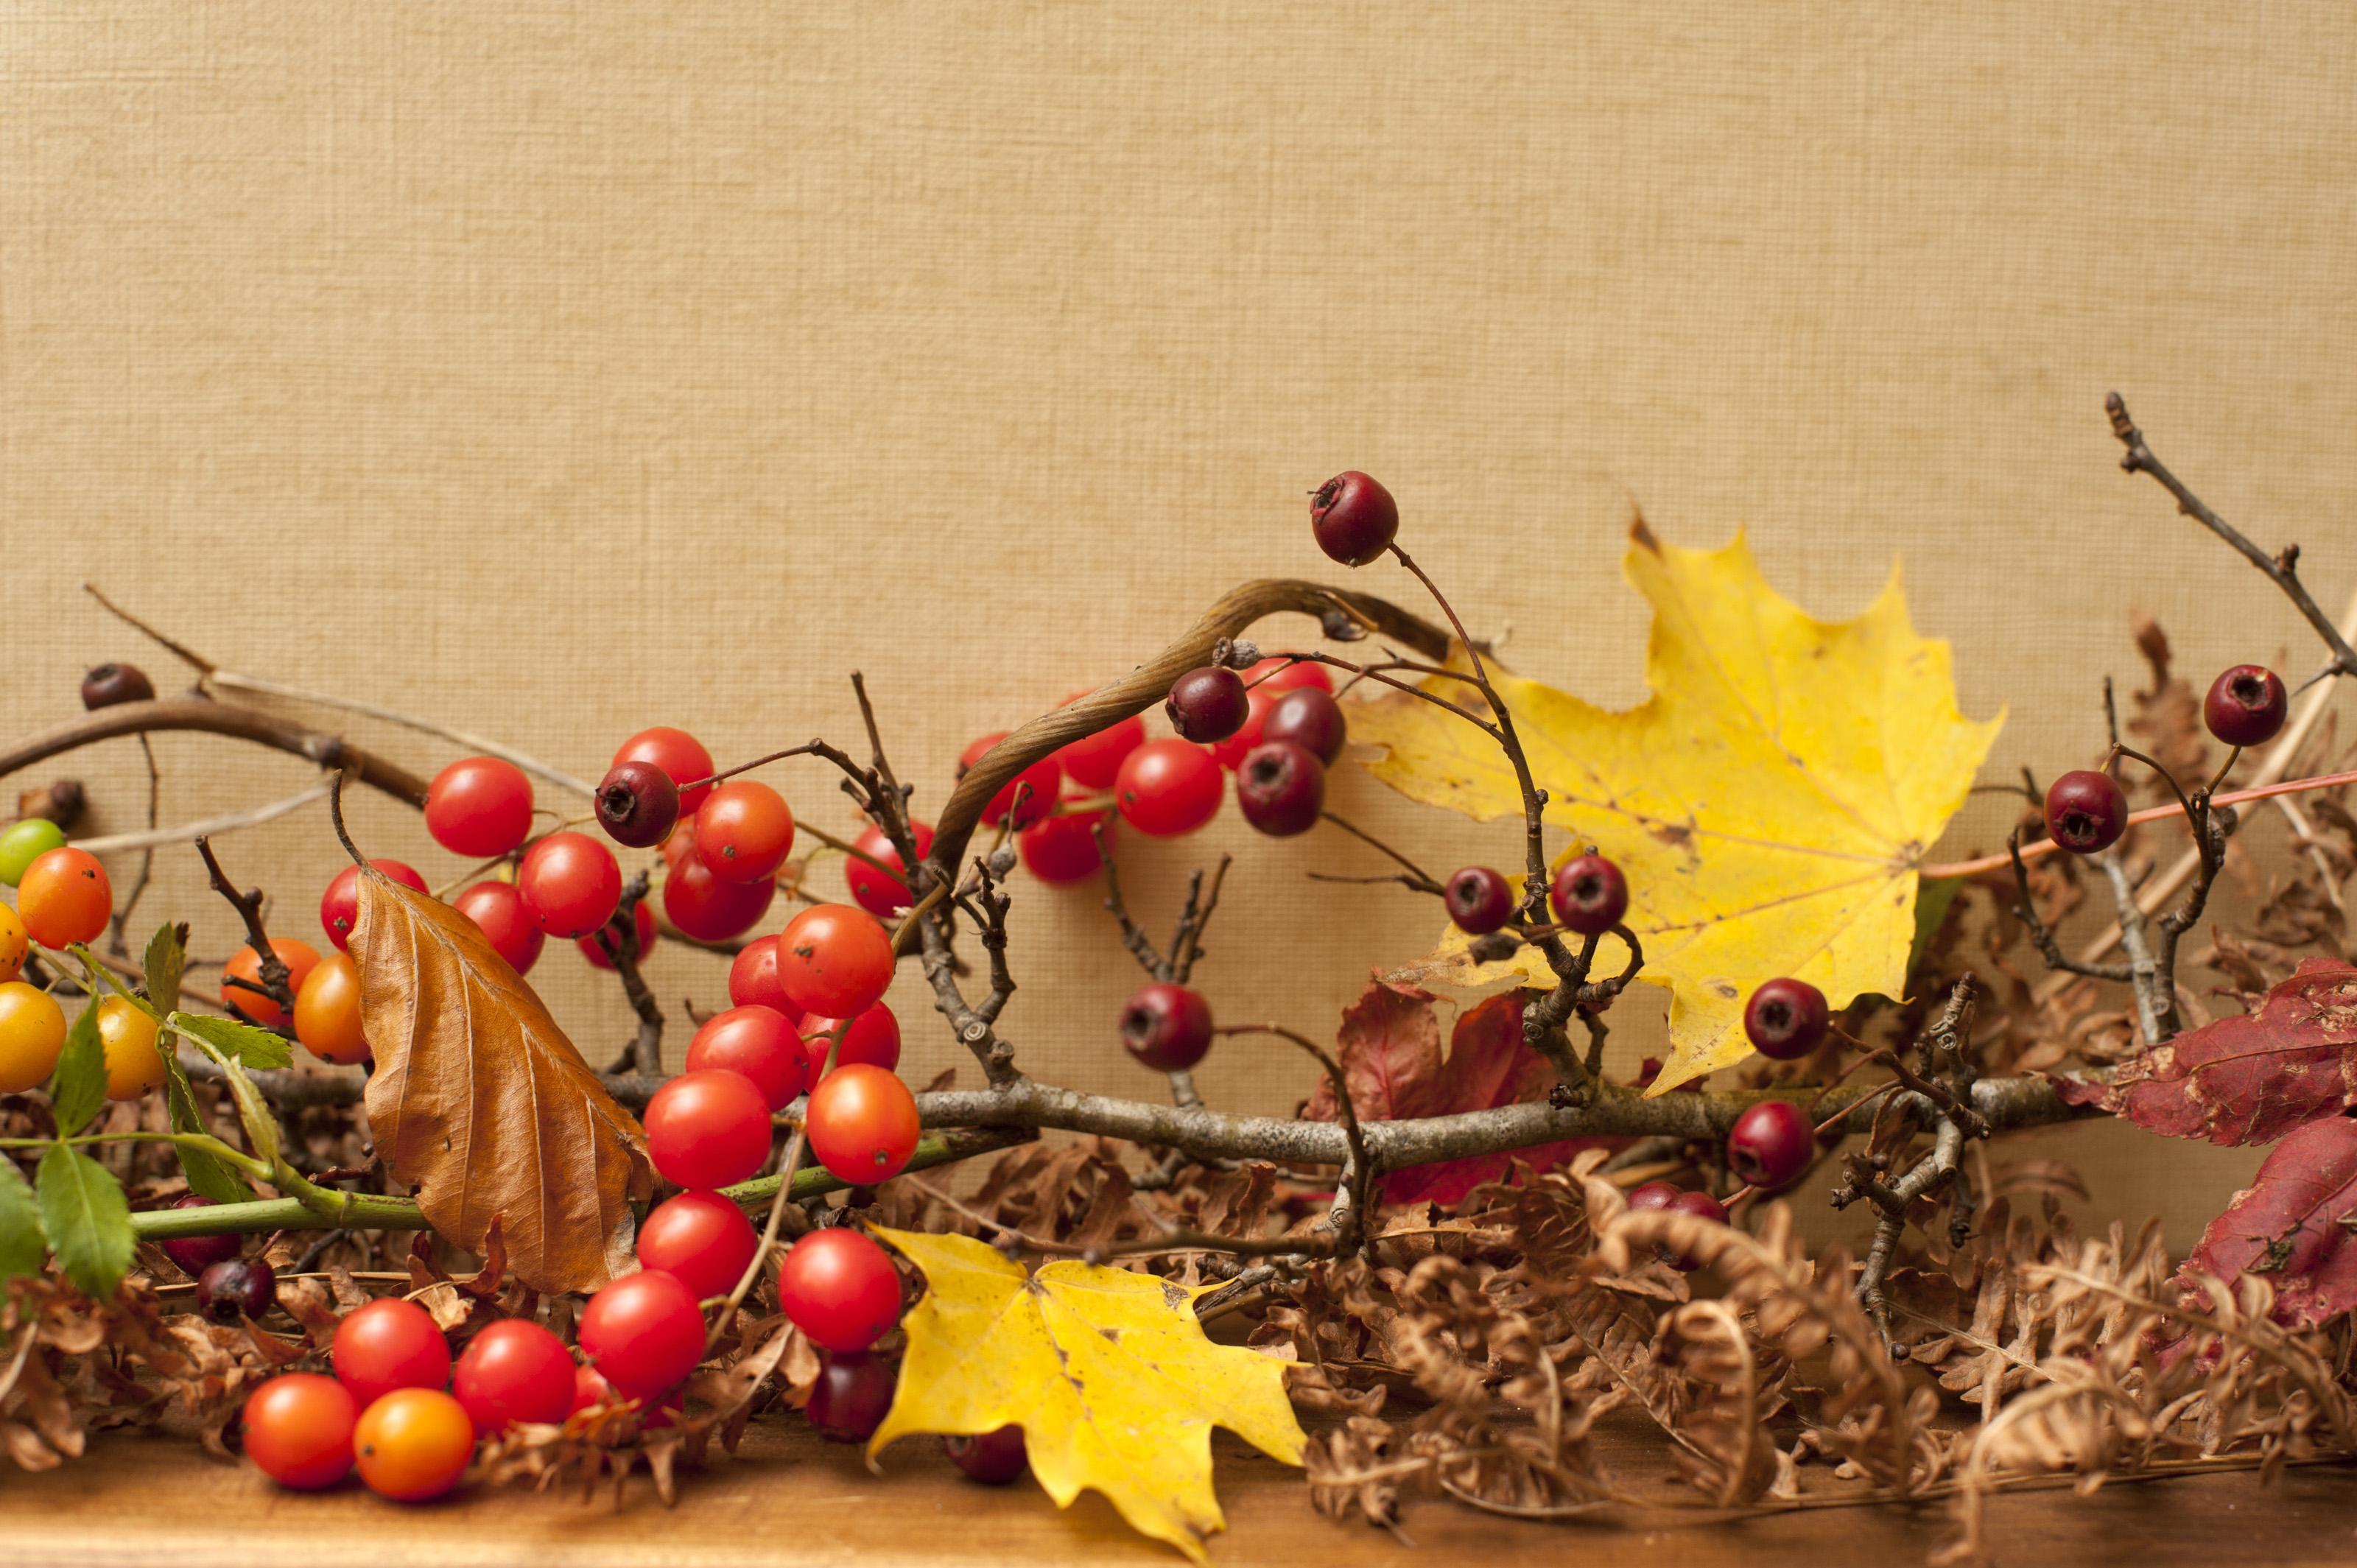 Image Of Autumn Or Fall Berries And Leaves